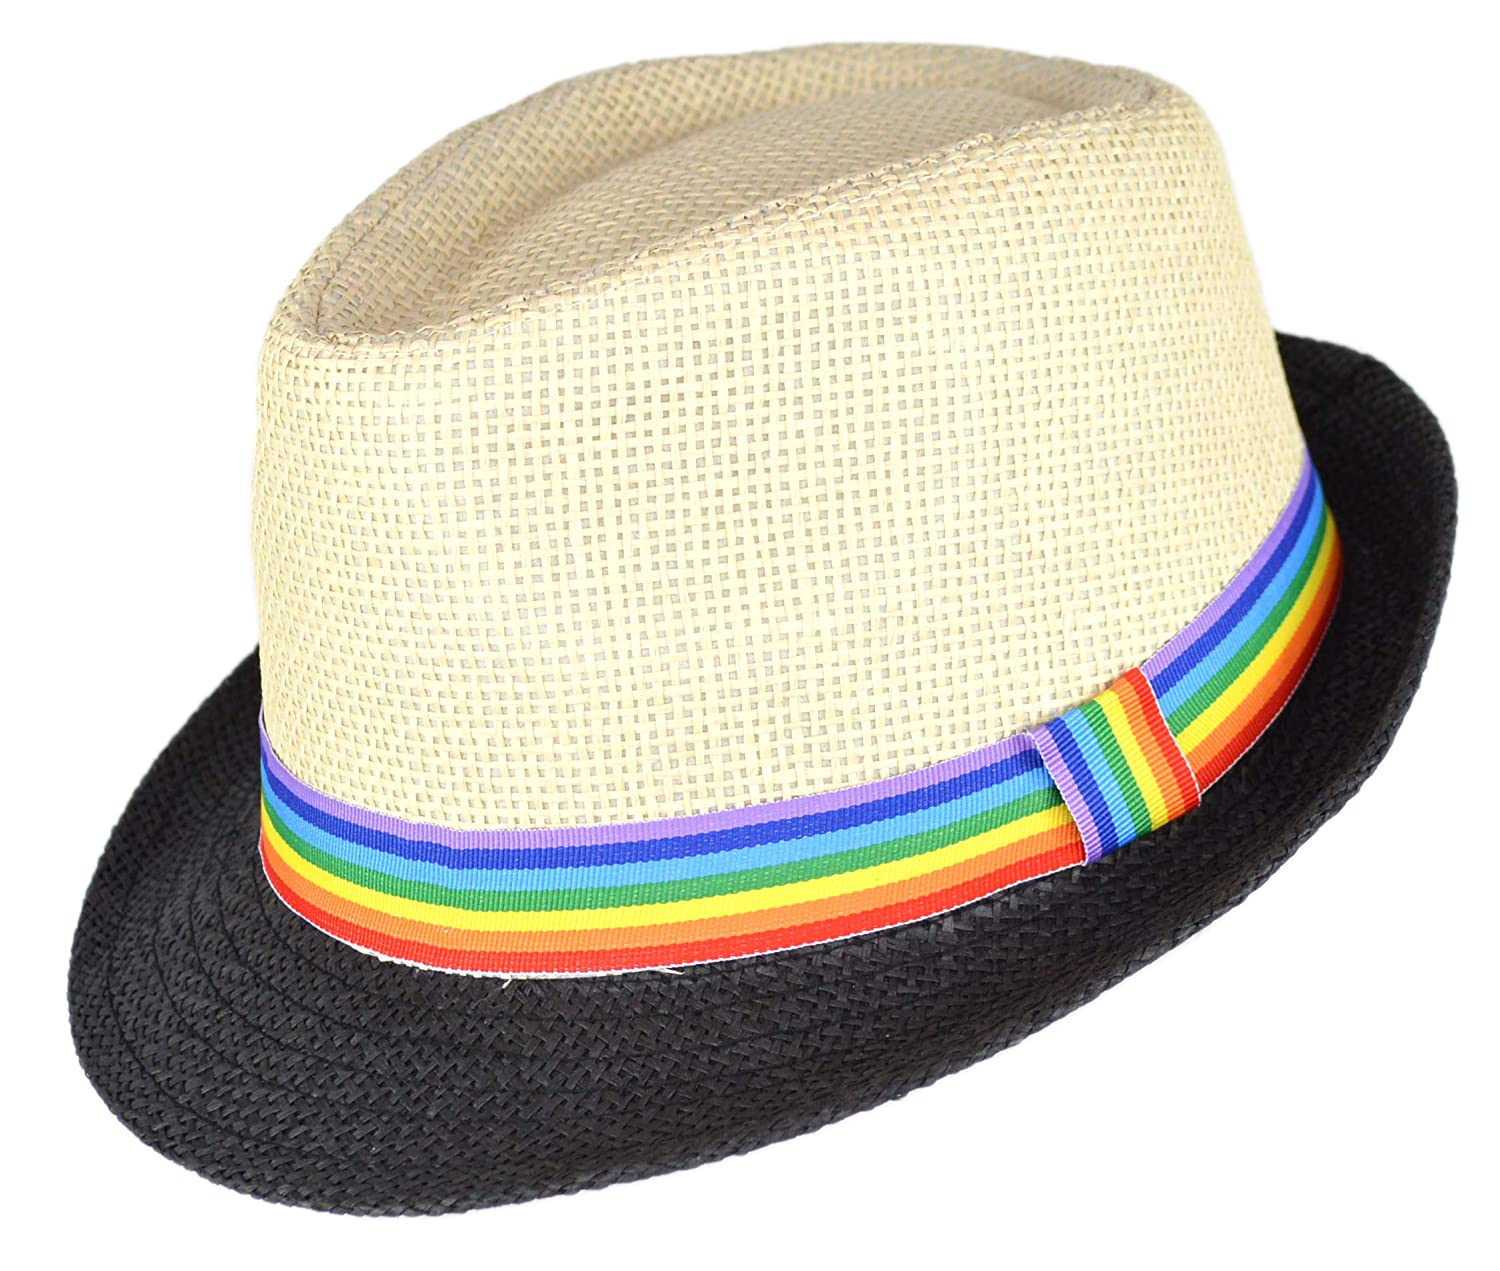 6f52e43ab4ab2a Super Cute Natural and Black Straw Fedora Hat with Rainbow Ribbon Hatband  (Natural and Black) at Amazon Men's Clothing store: